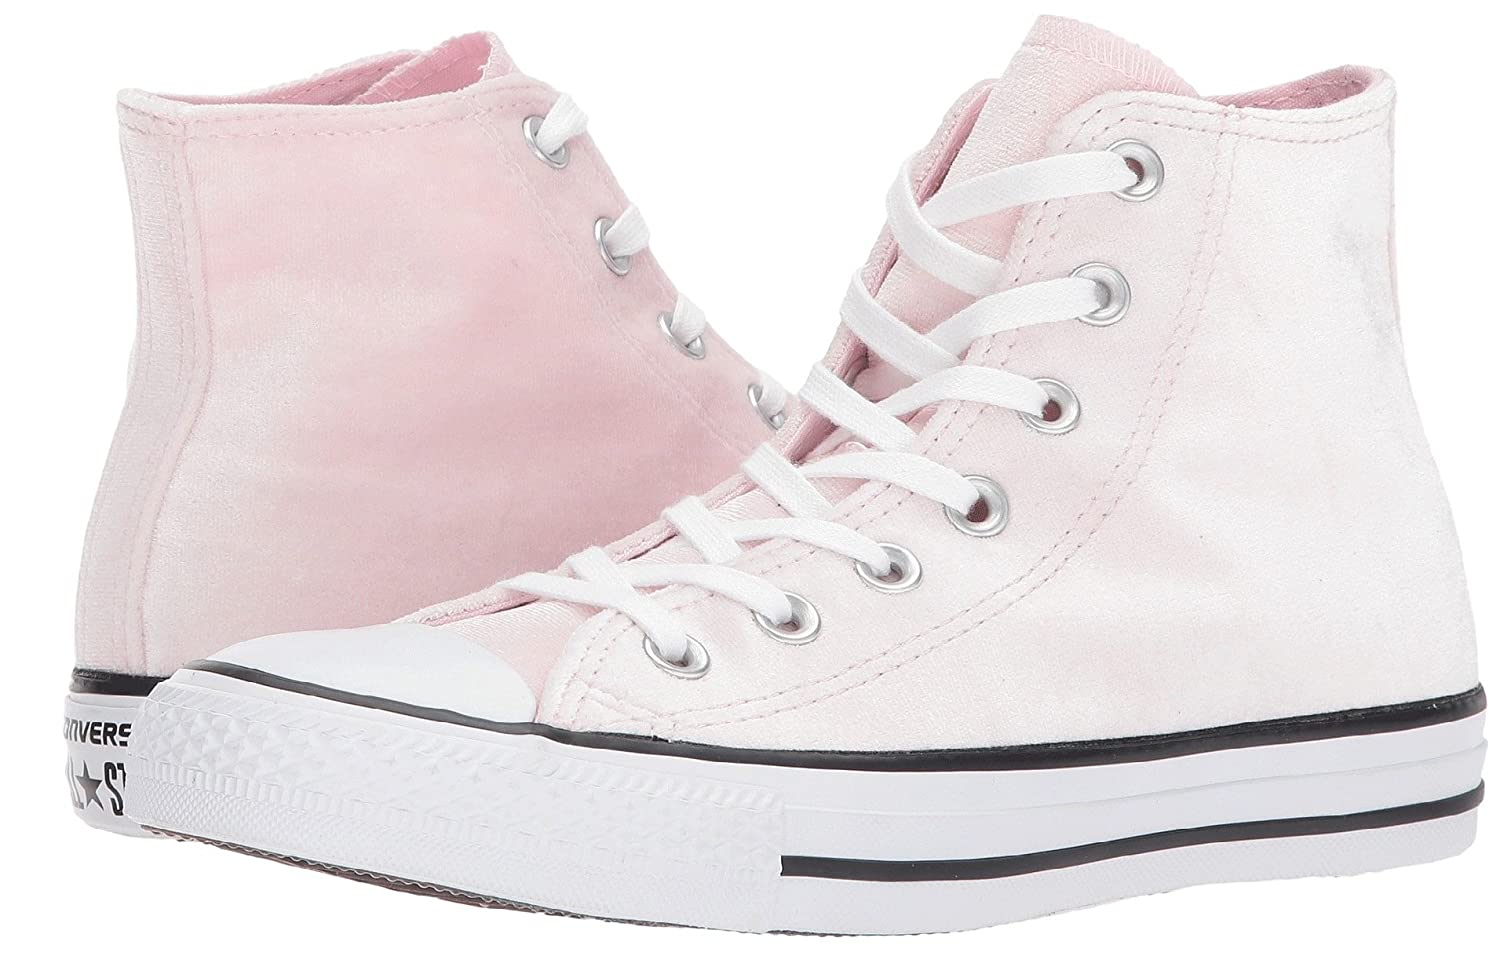 7bbe224cbdef Amazon.com  Converse Womens CHUCK TAYLOR ALL STAR HI